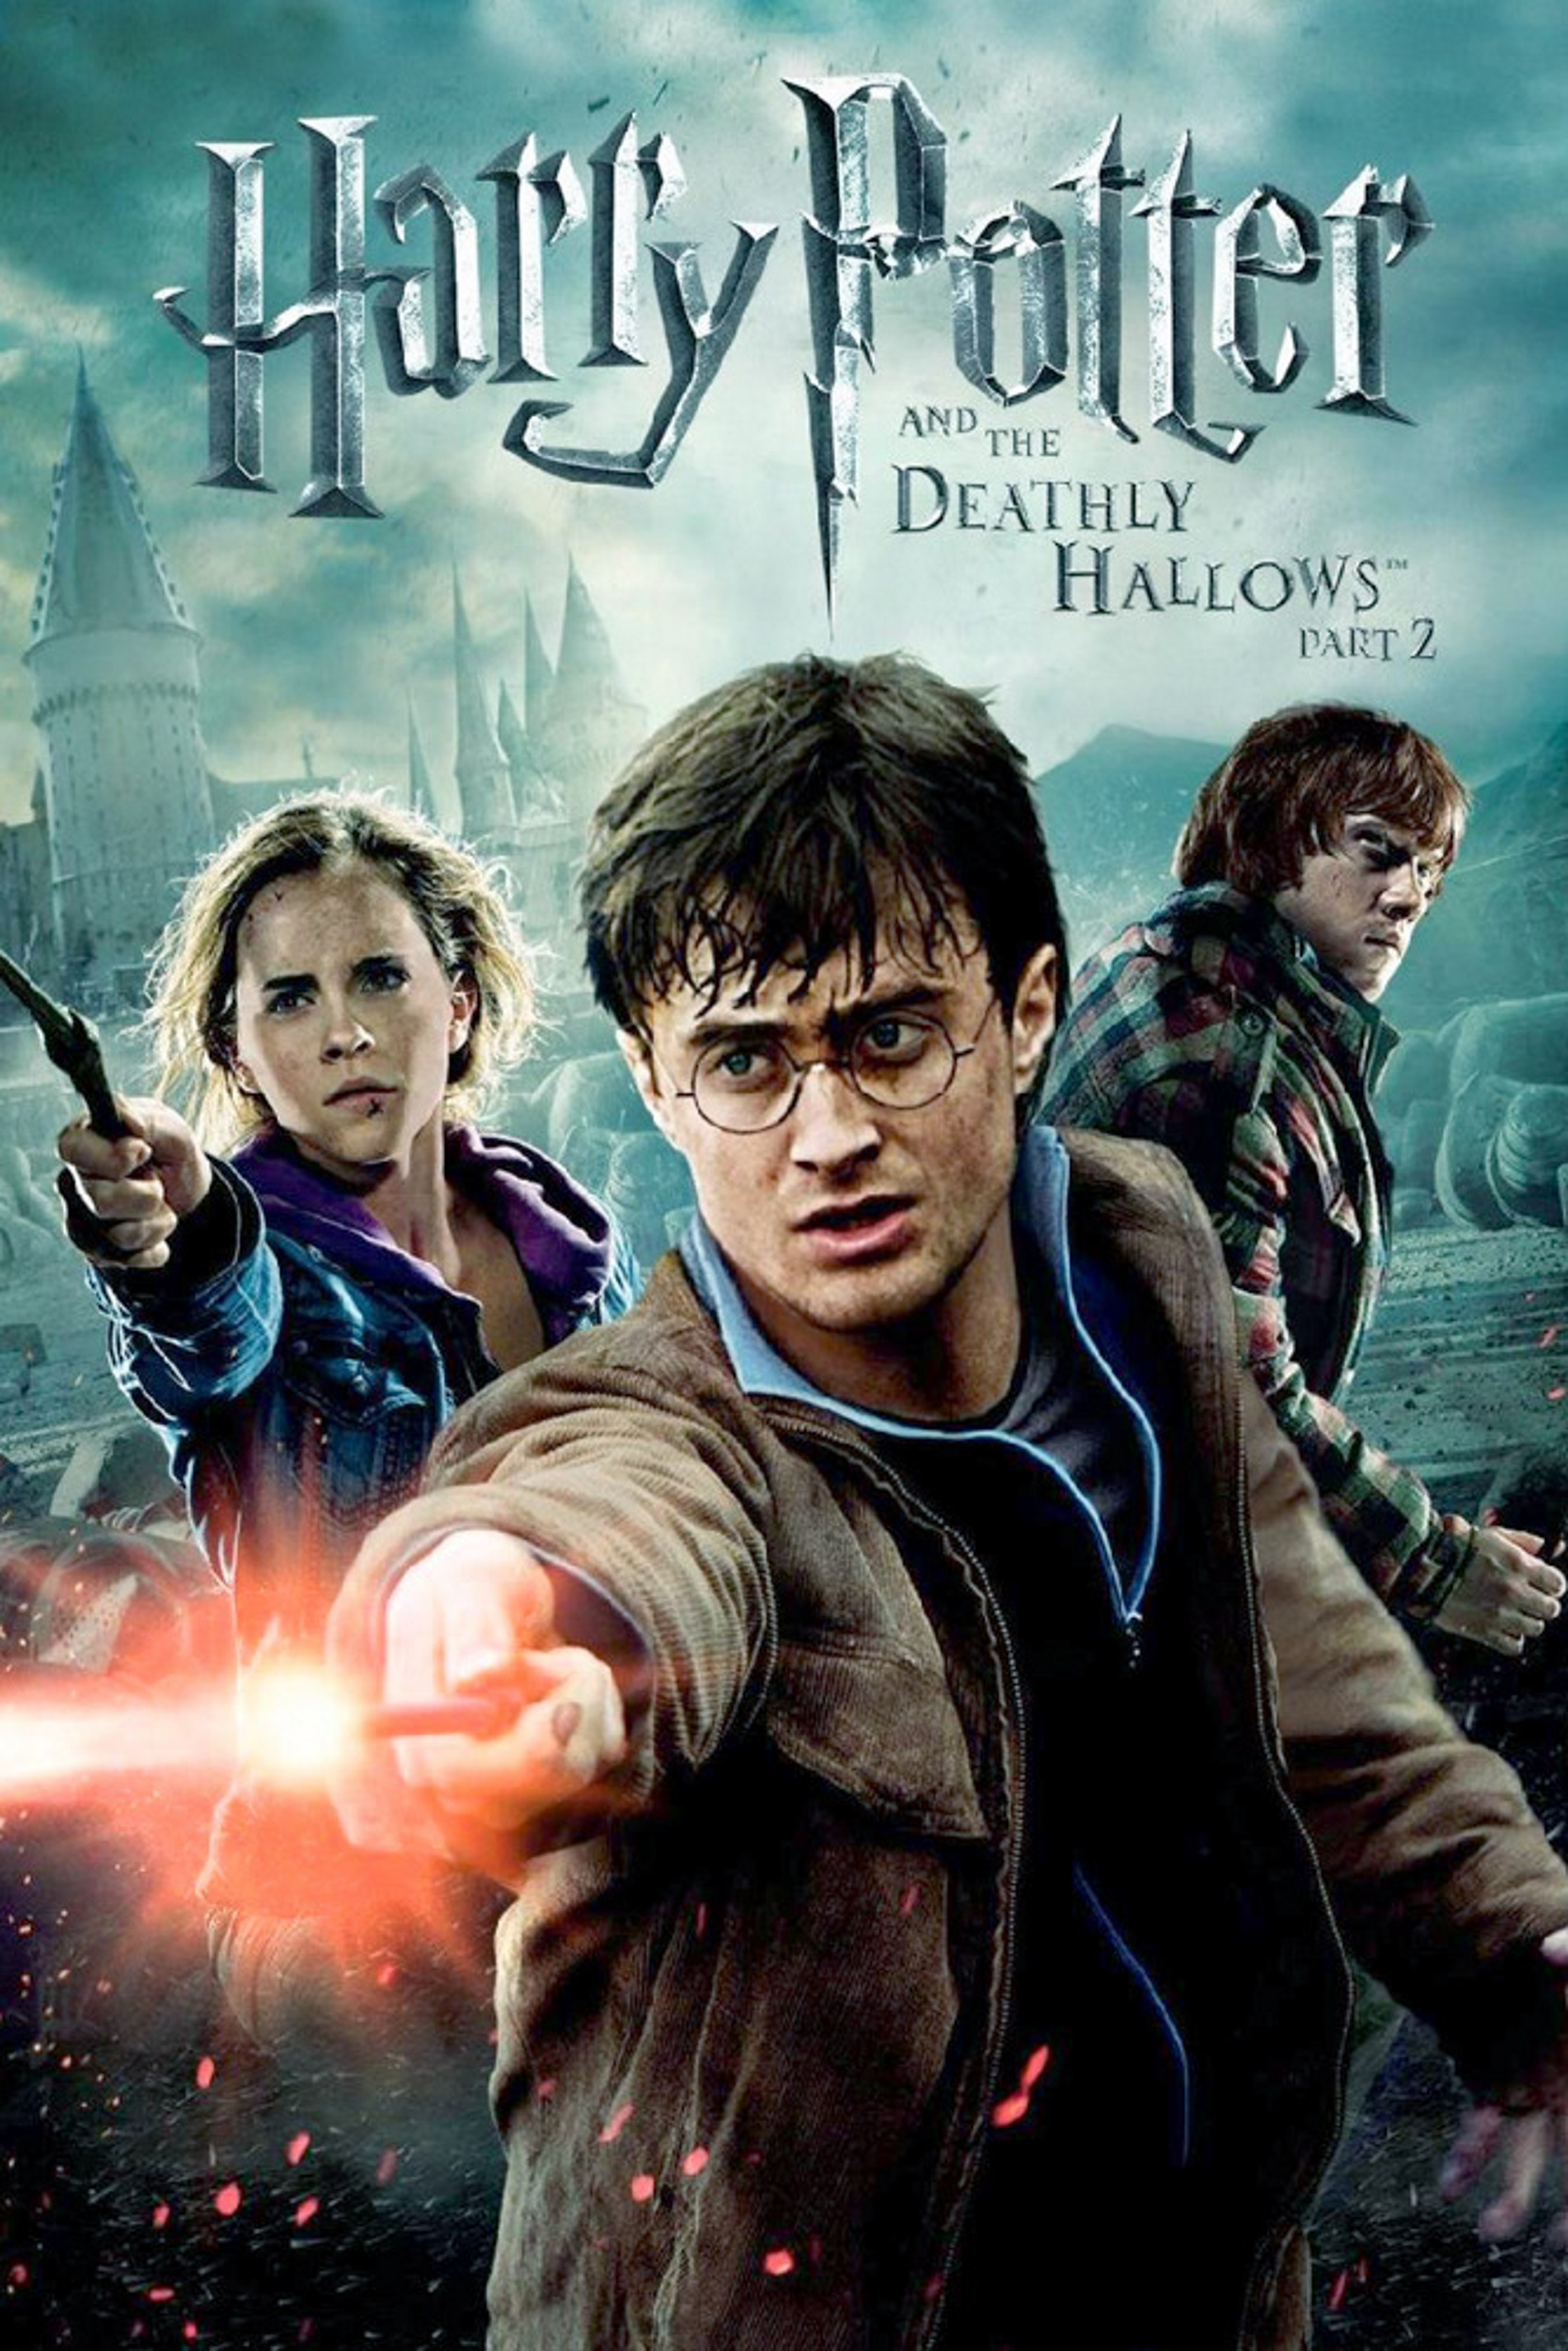 Harry Potter And The Deathly Hallows Full Book